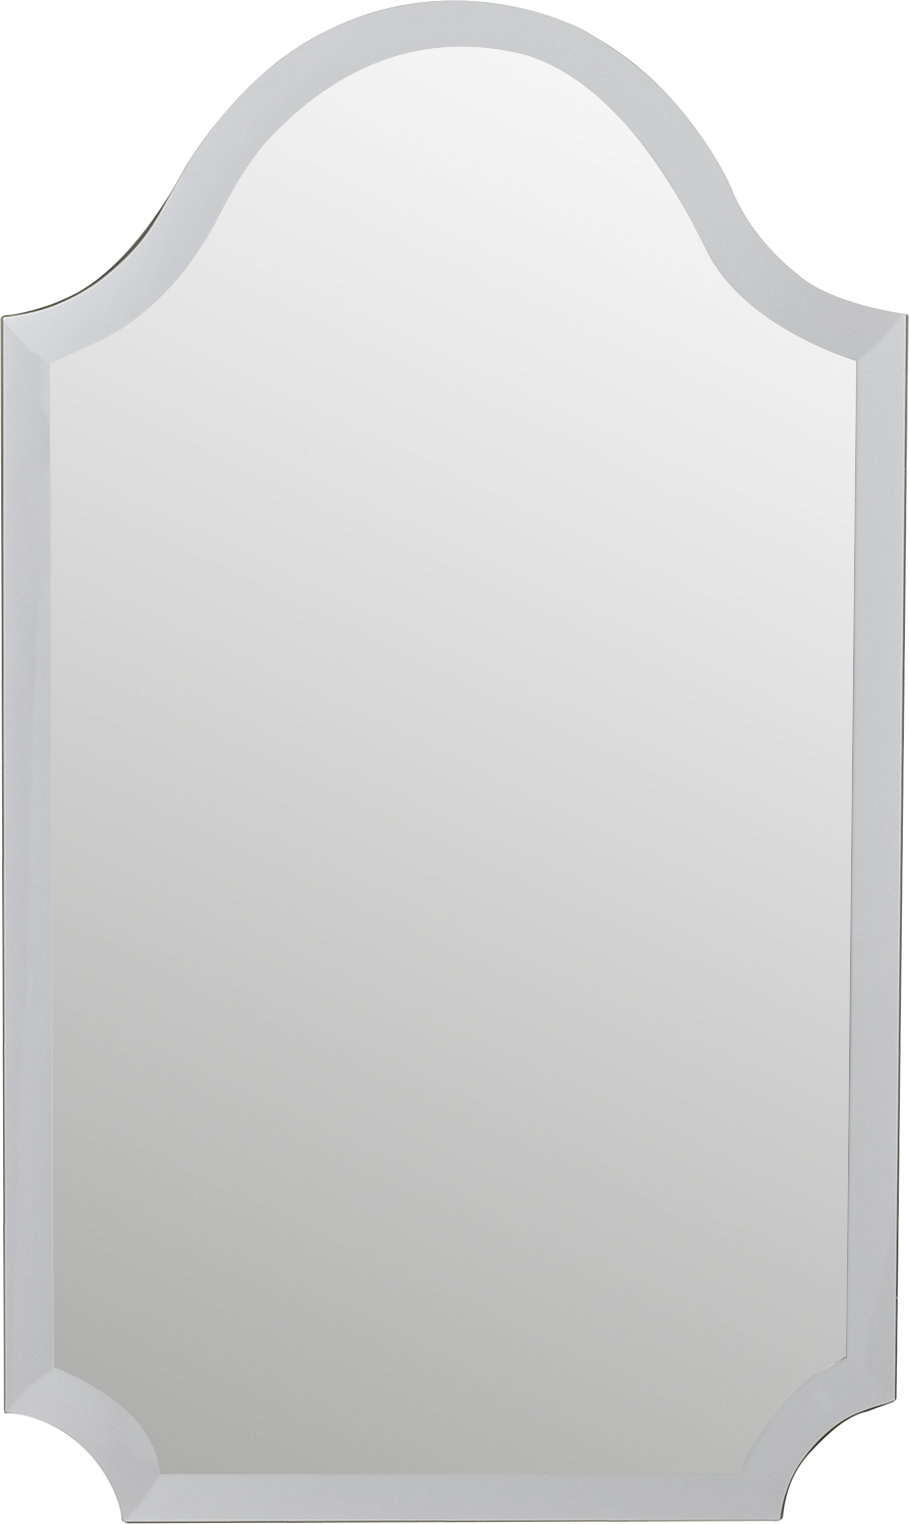 Dariel Tall Arched Scalloped Wall Mirror Pertaining To Dariel Tall Arched Scalloped Wall Mirrors (Photo 3 of 20)